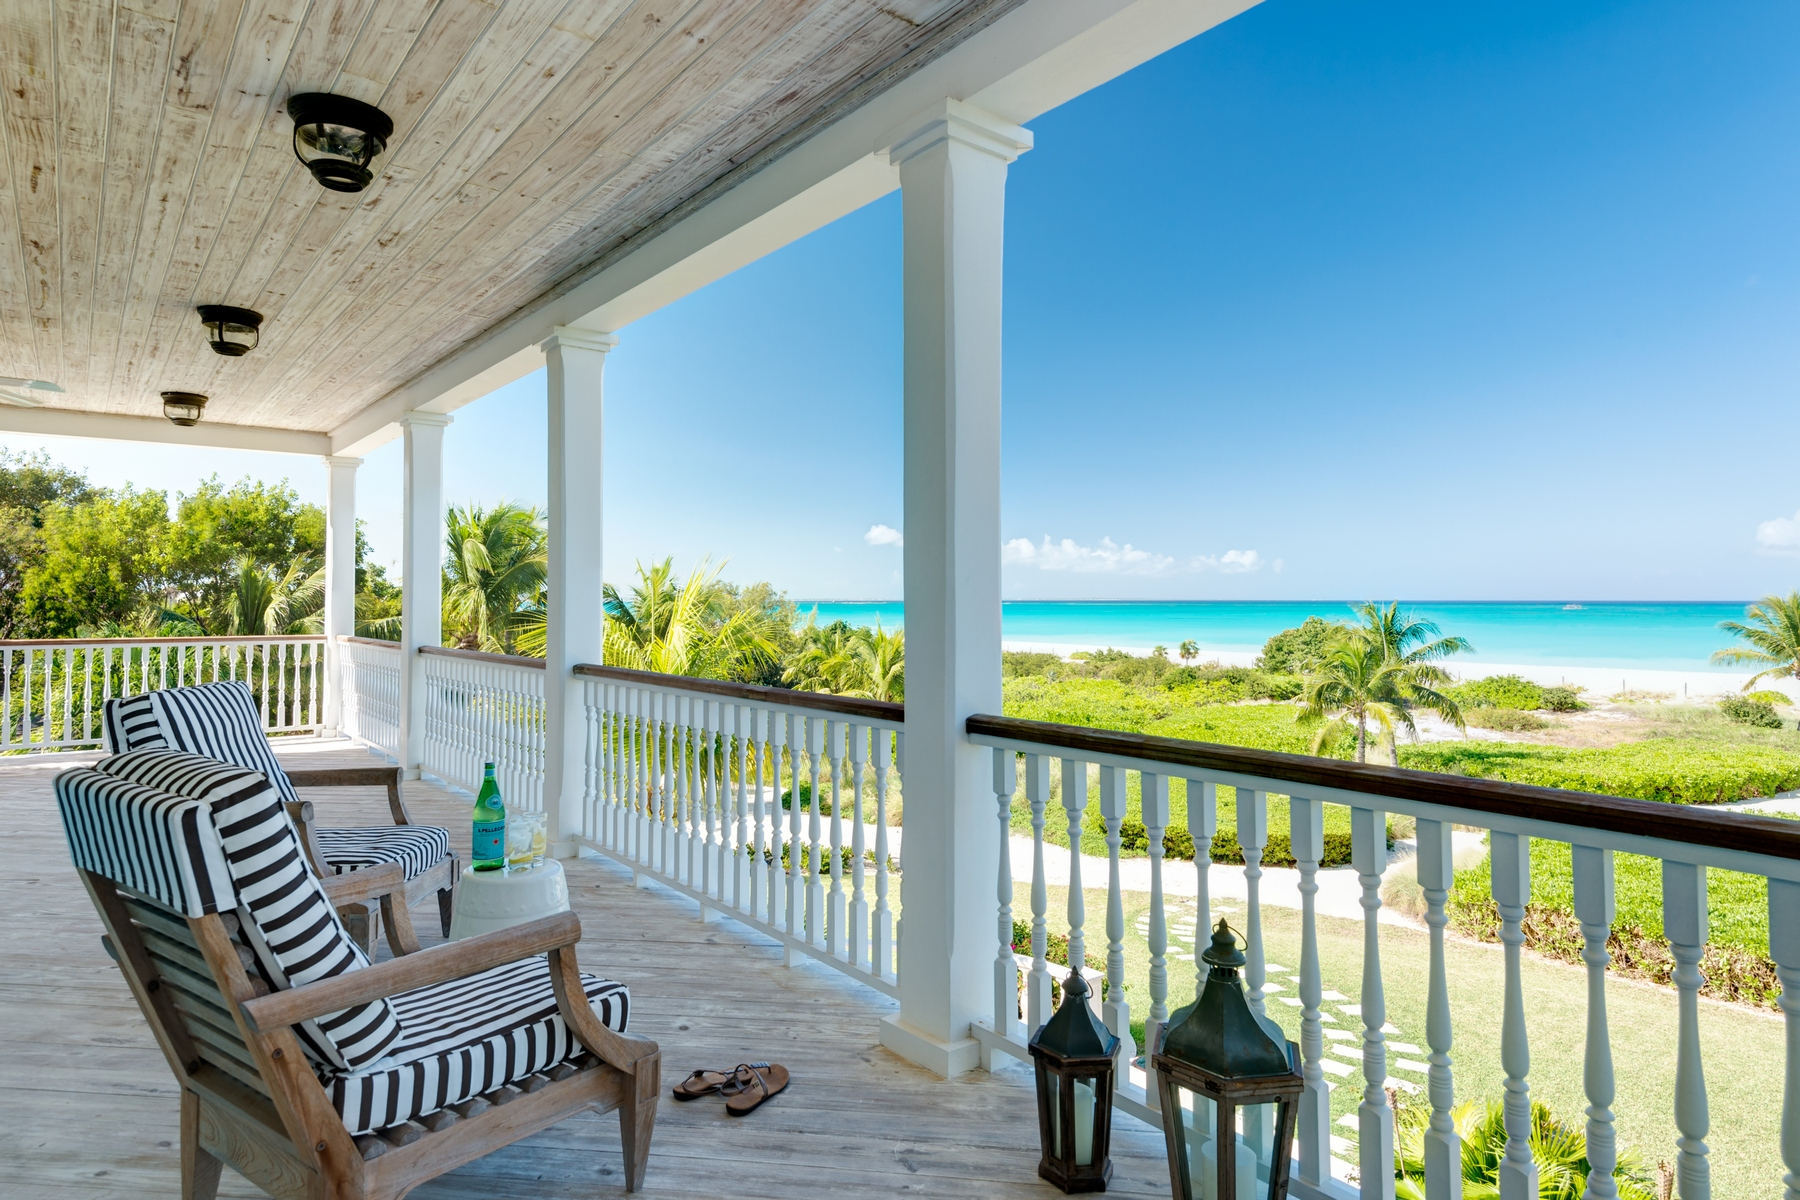 Additional photo for property listing at Amazing Grace   Vacation Rental 106 Prince of Wales Drive 格蕾斯湾, 普罗维登夏 TCI BWI 特克斯和凯科斯群岛